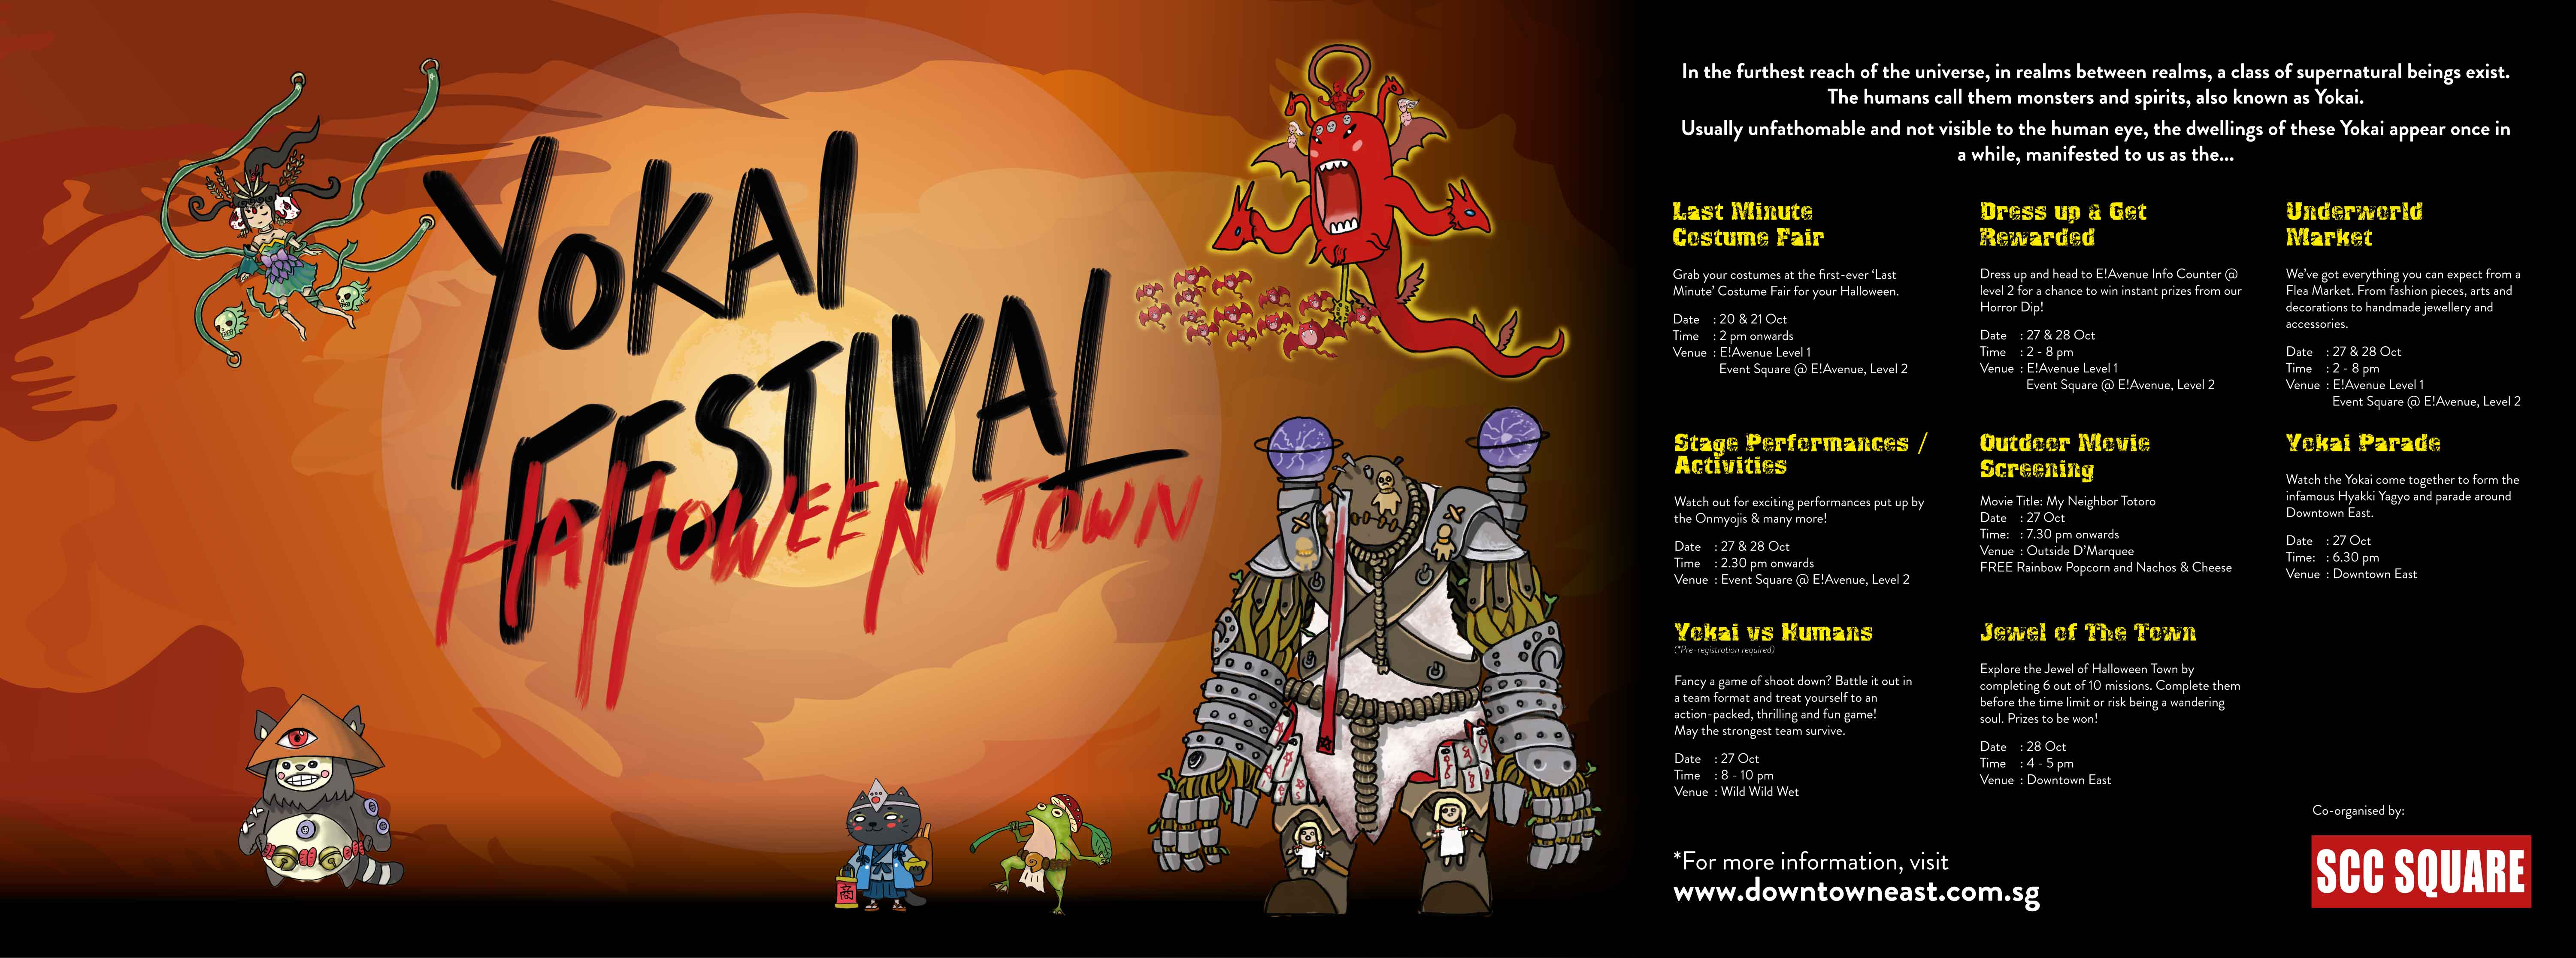 NTUC Downtown East invites you join the fun at Halloween Town: Yokai Festival - Alvinology